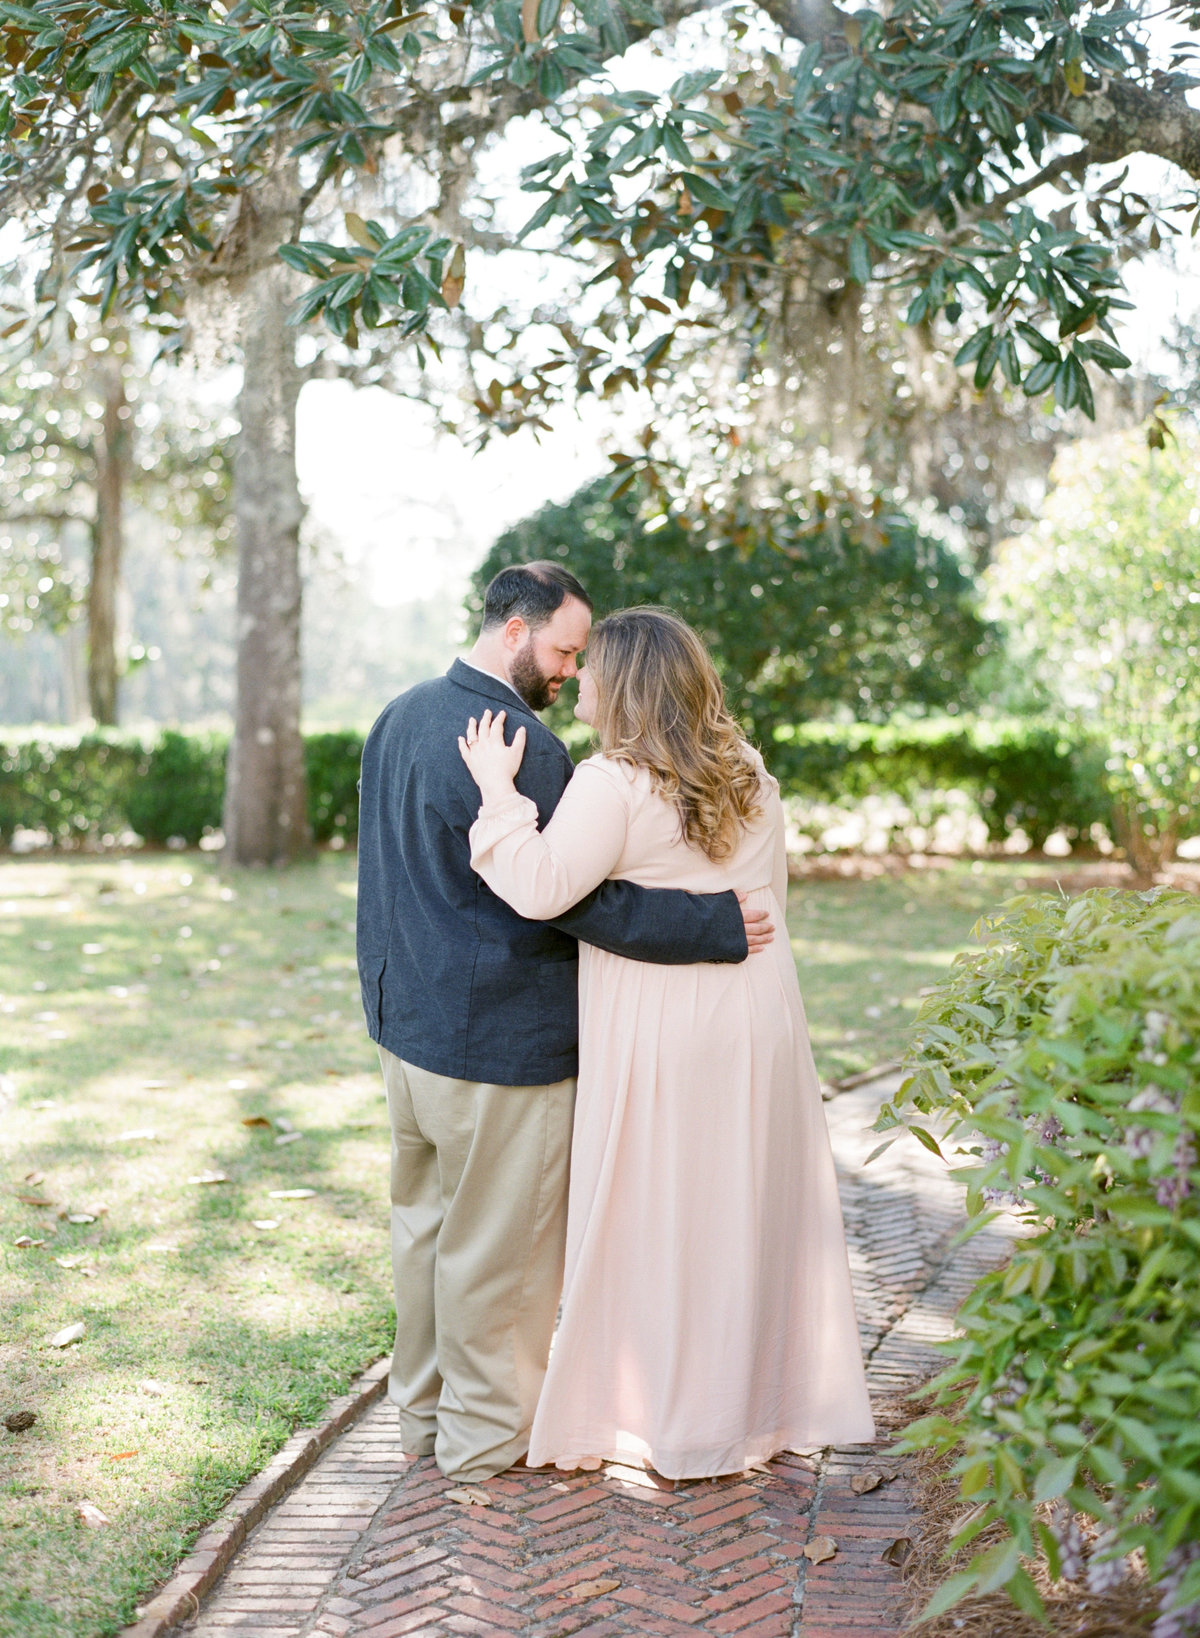 CourtneyWoodhamPhoto-119